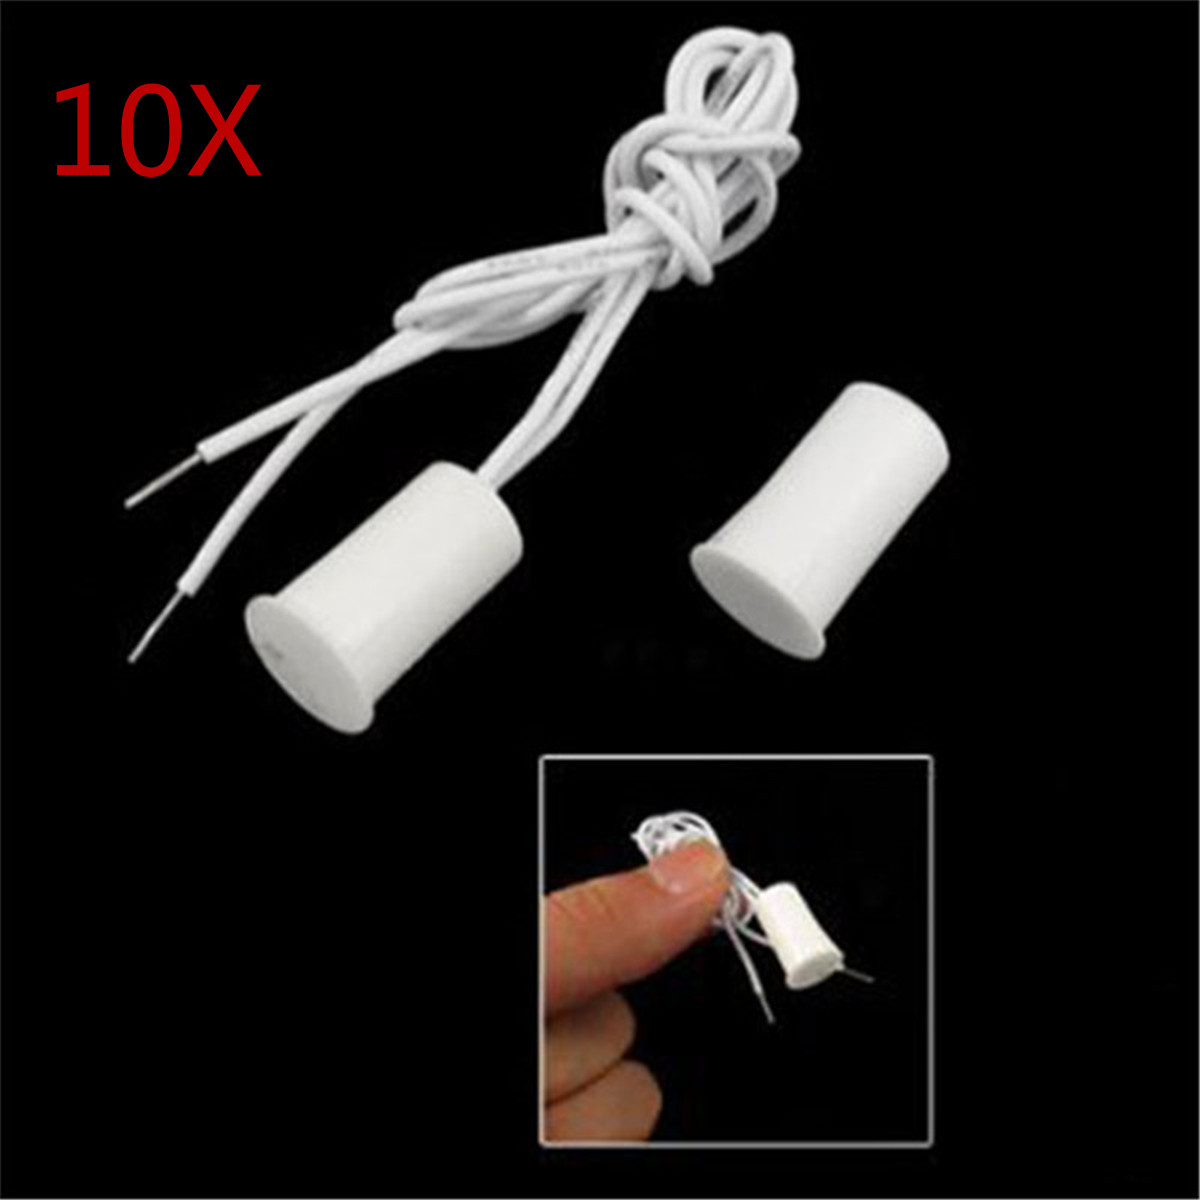 10 Pair Wired Door Window Sensor Recessed Magnetic Contacts Security Reed Switch Alarm For Home Security Alarm White Hot Sale